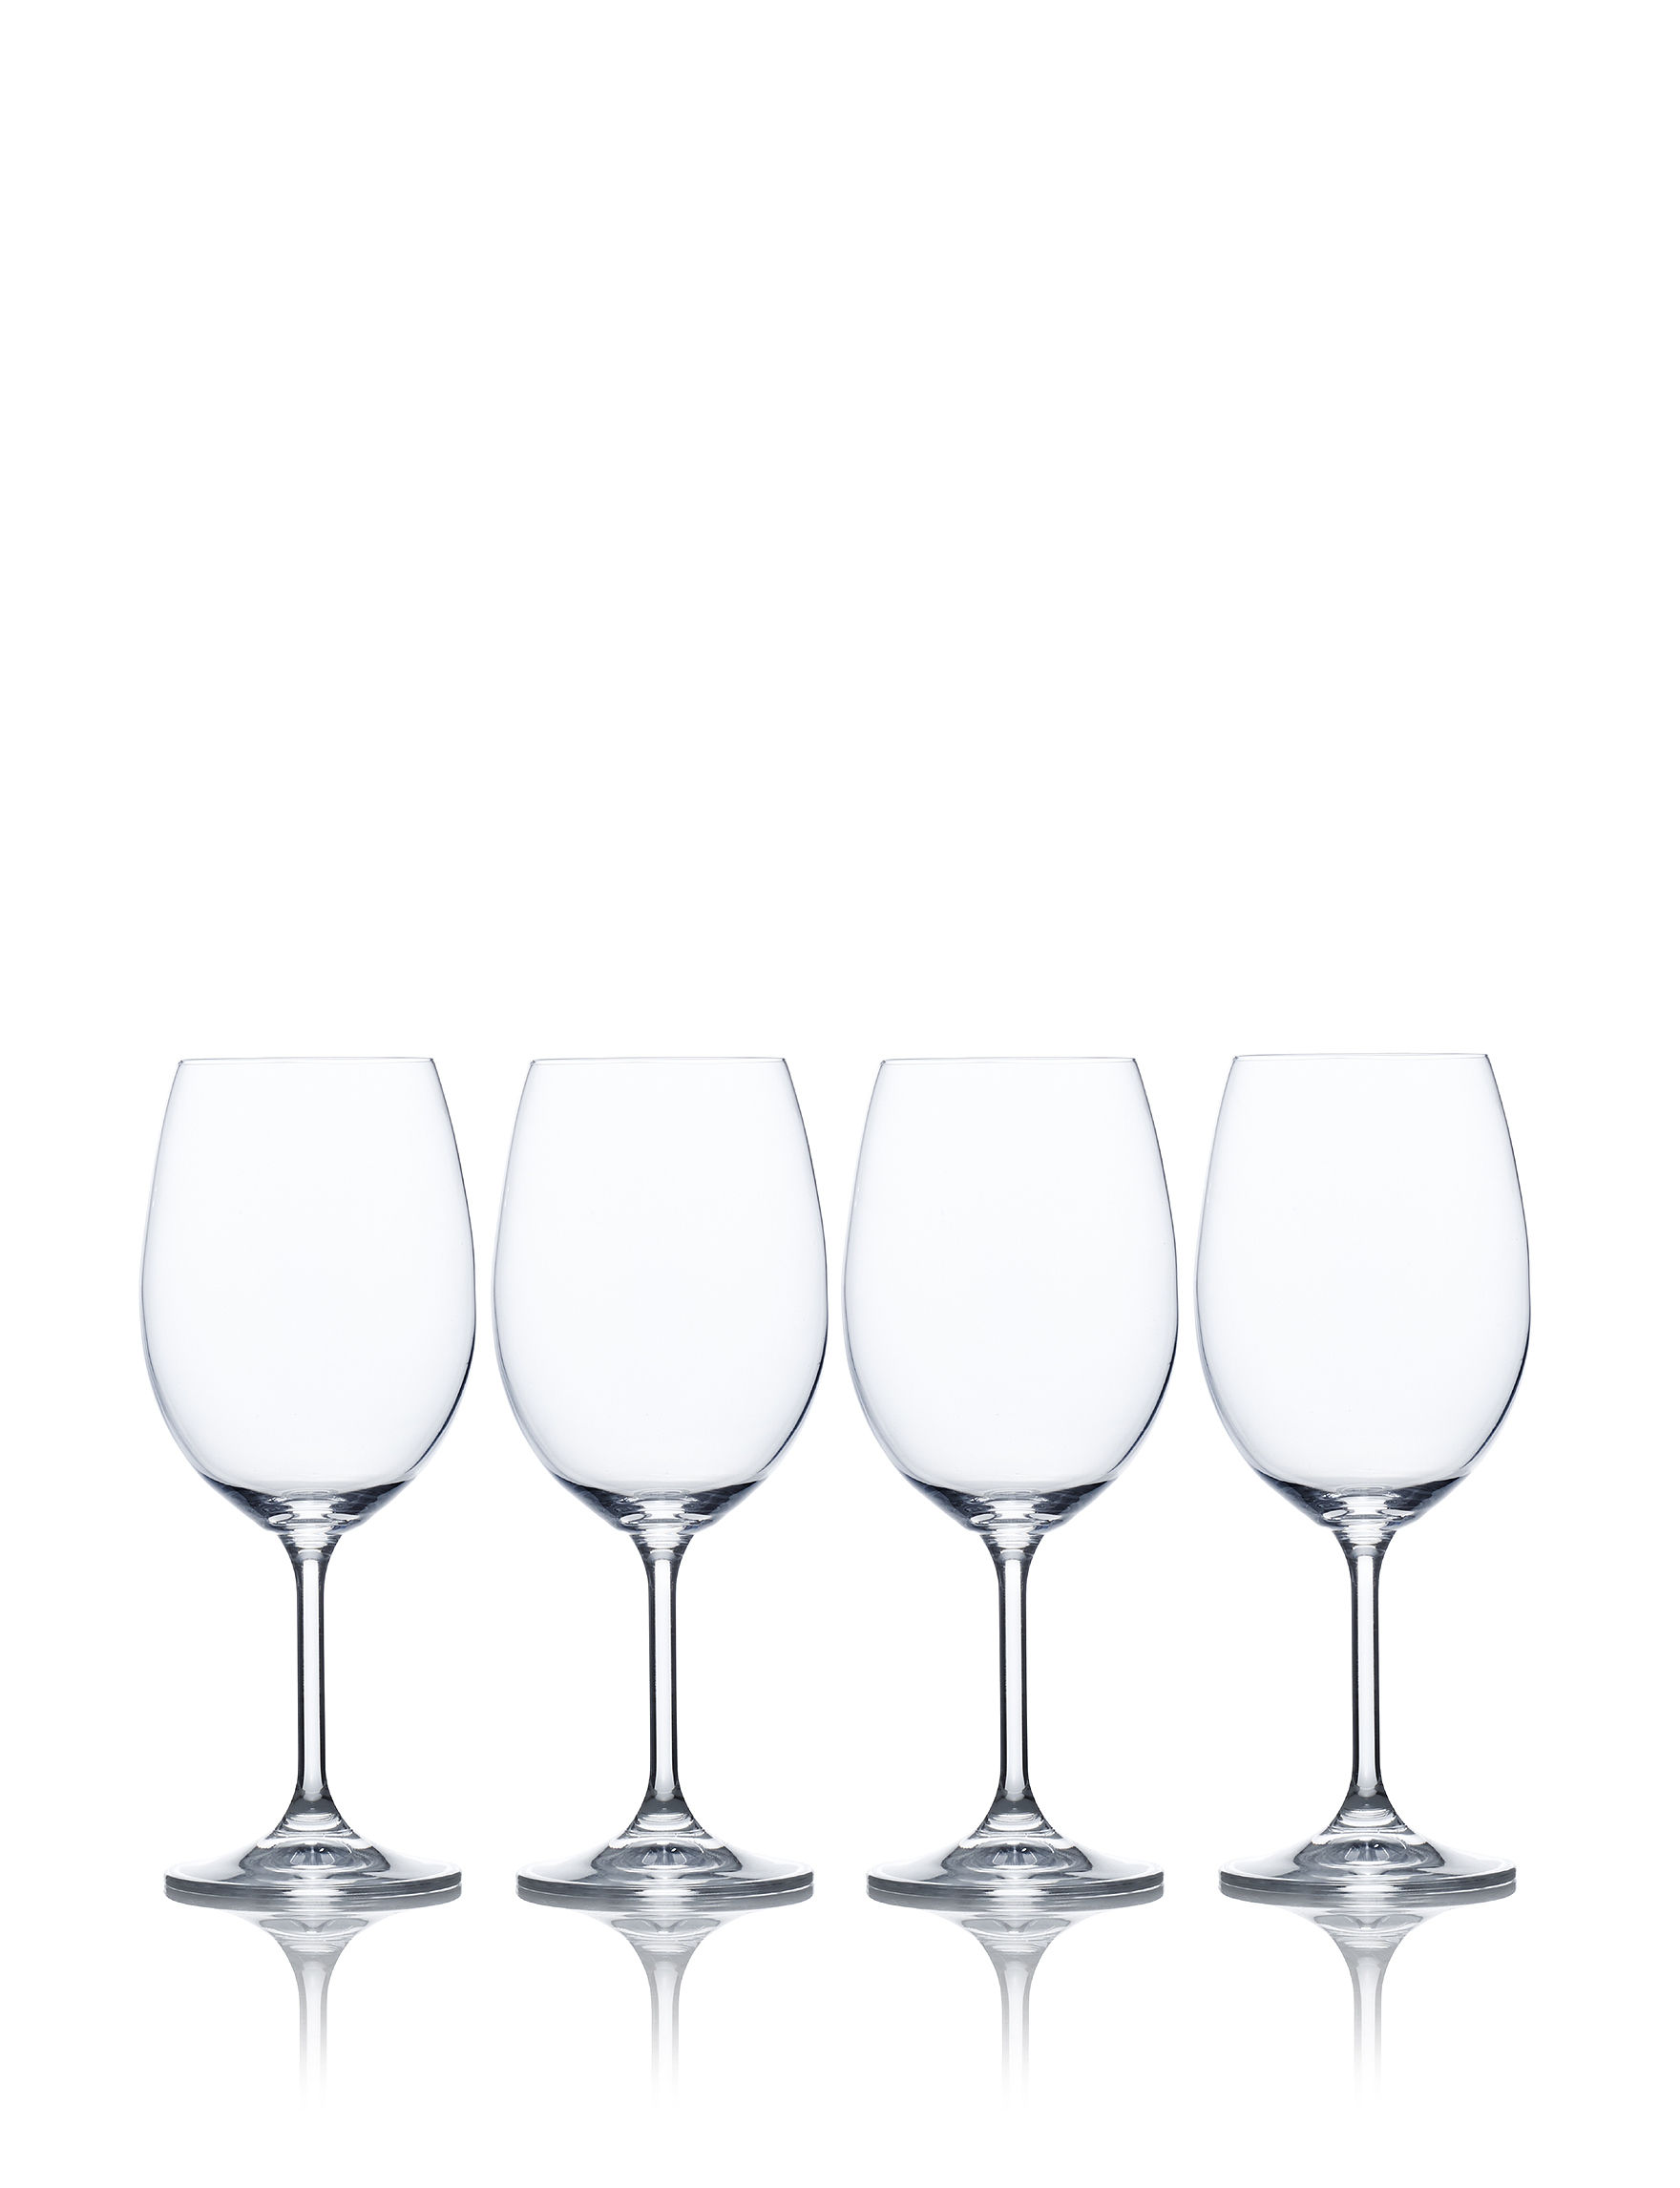 Beautiful Mikasa Wine Glasses for Stemware or Serveware: Unbelievable Price Of Mikasa Wine Glasses